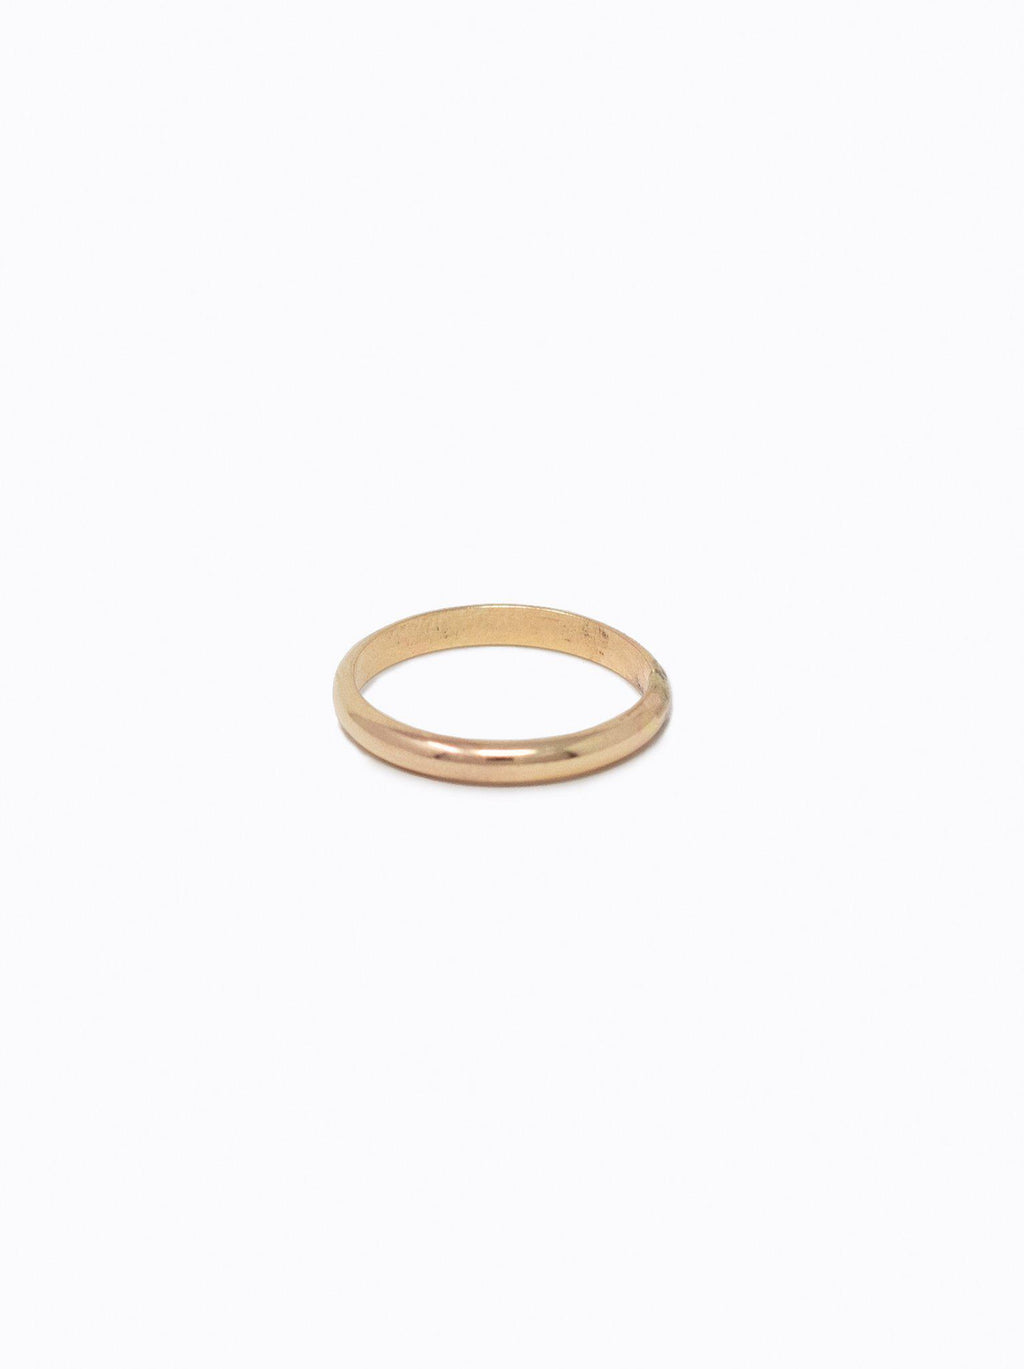 ABLE Dome Ring - 13 Hub Lane   |